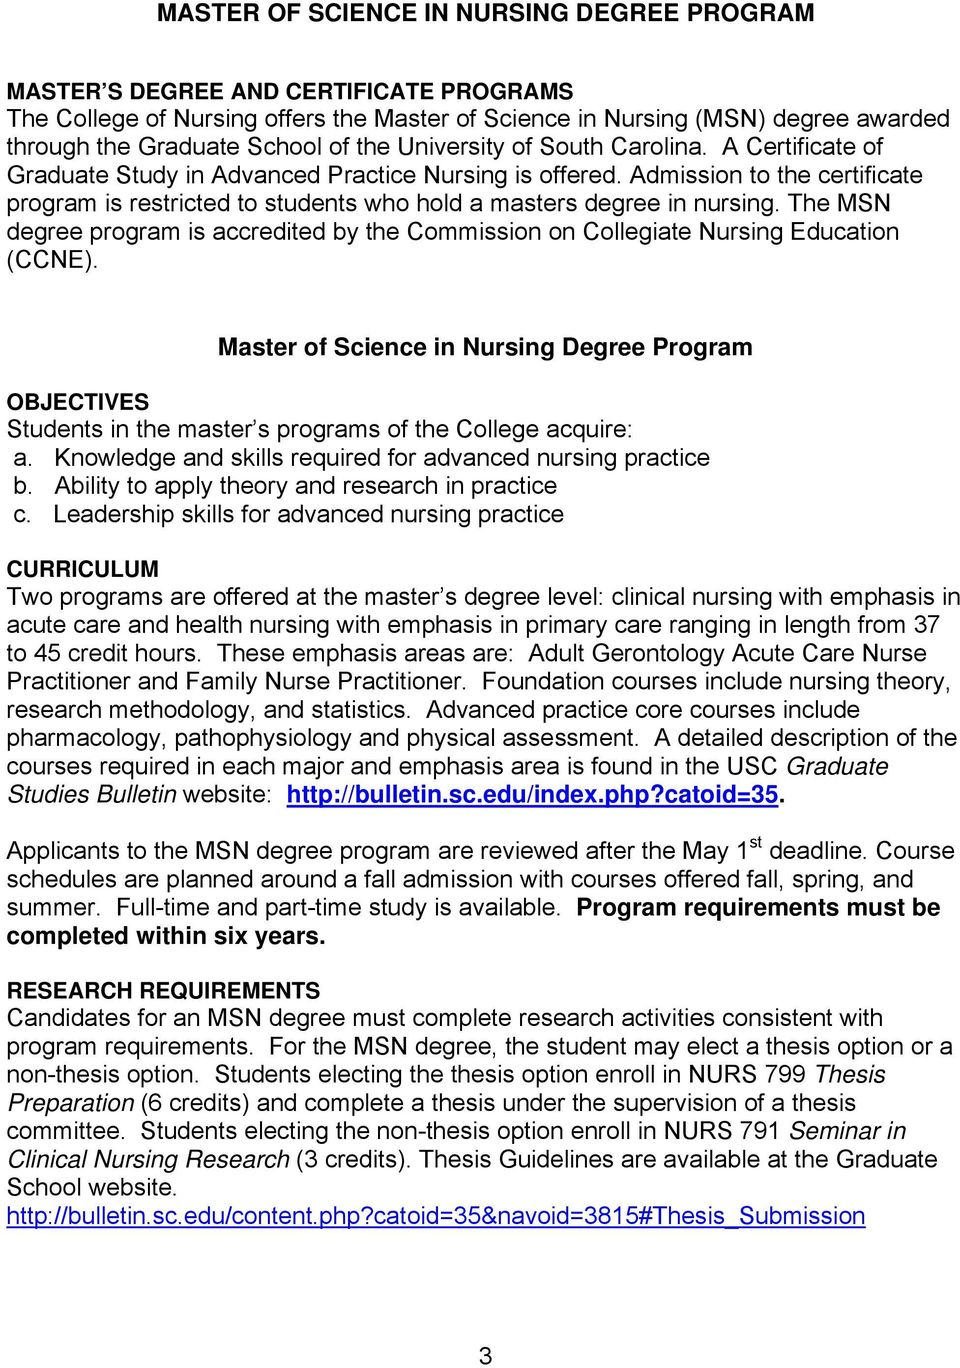 Admission to the certificate program is restricted to students who hold a masters degree in nursing. The MSN degree program is accredited by the Commission on Collegiate Nursing Education (CCNE).